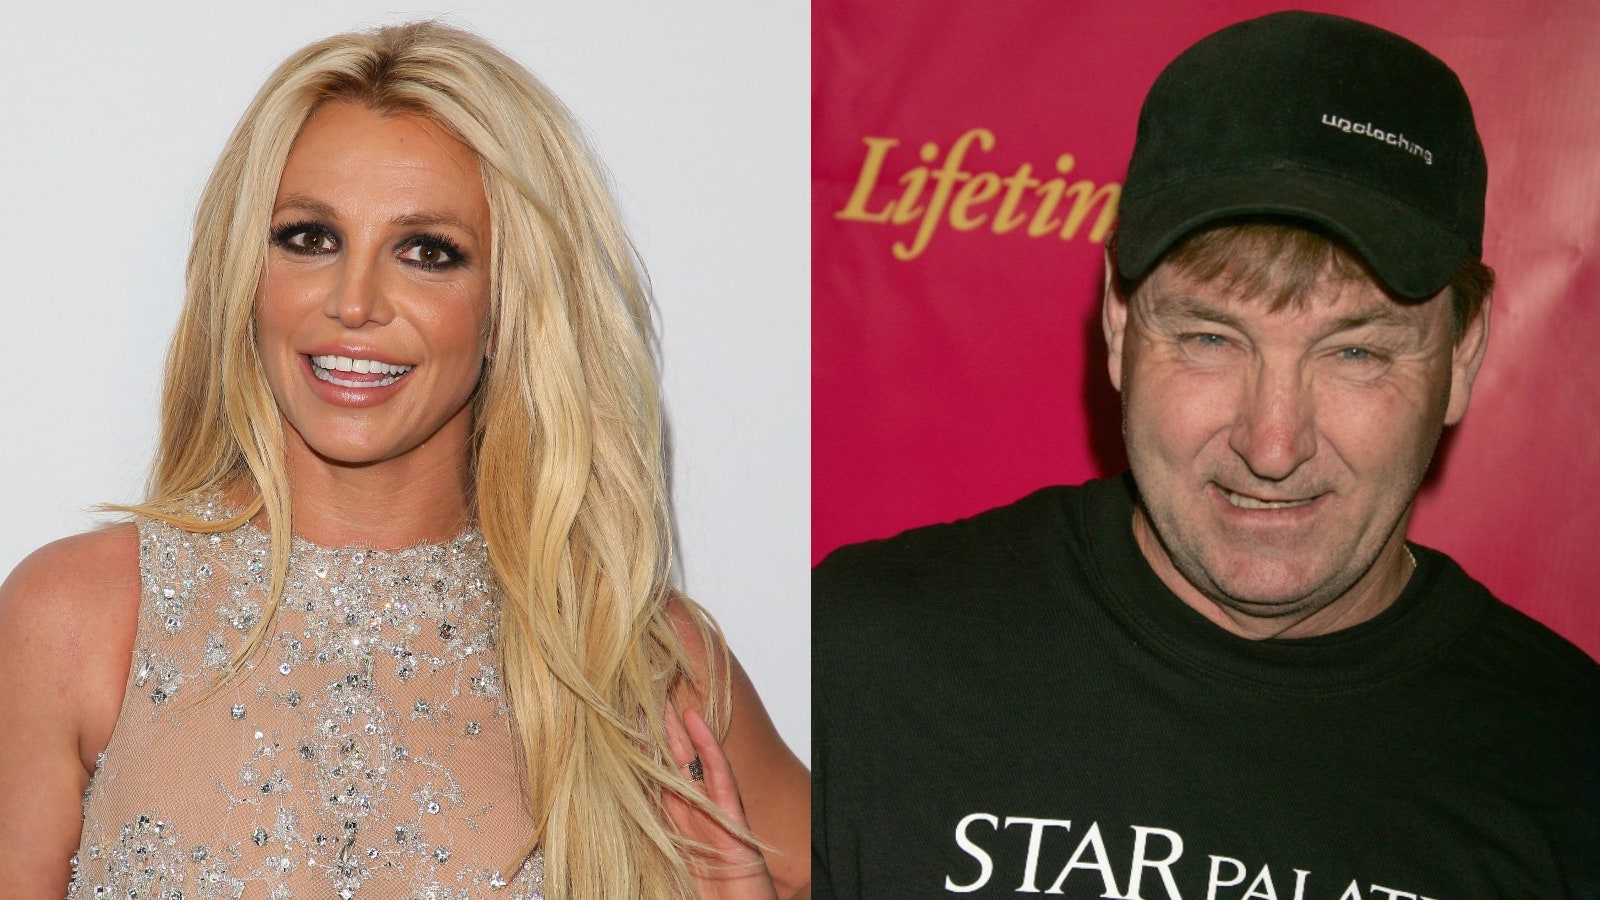 Britney Spears Is Finally Free From Her Father's Control